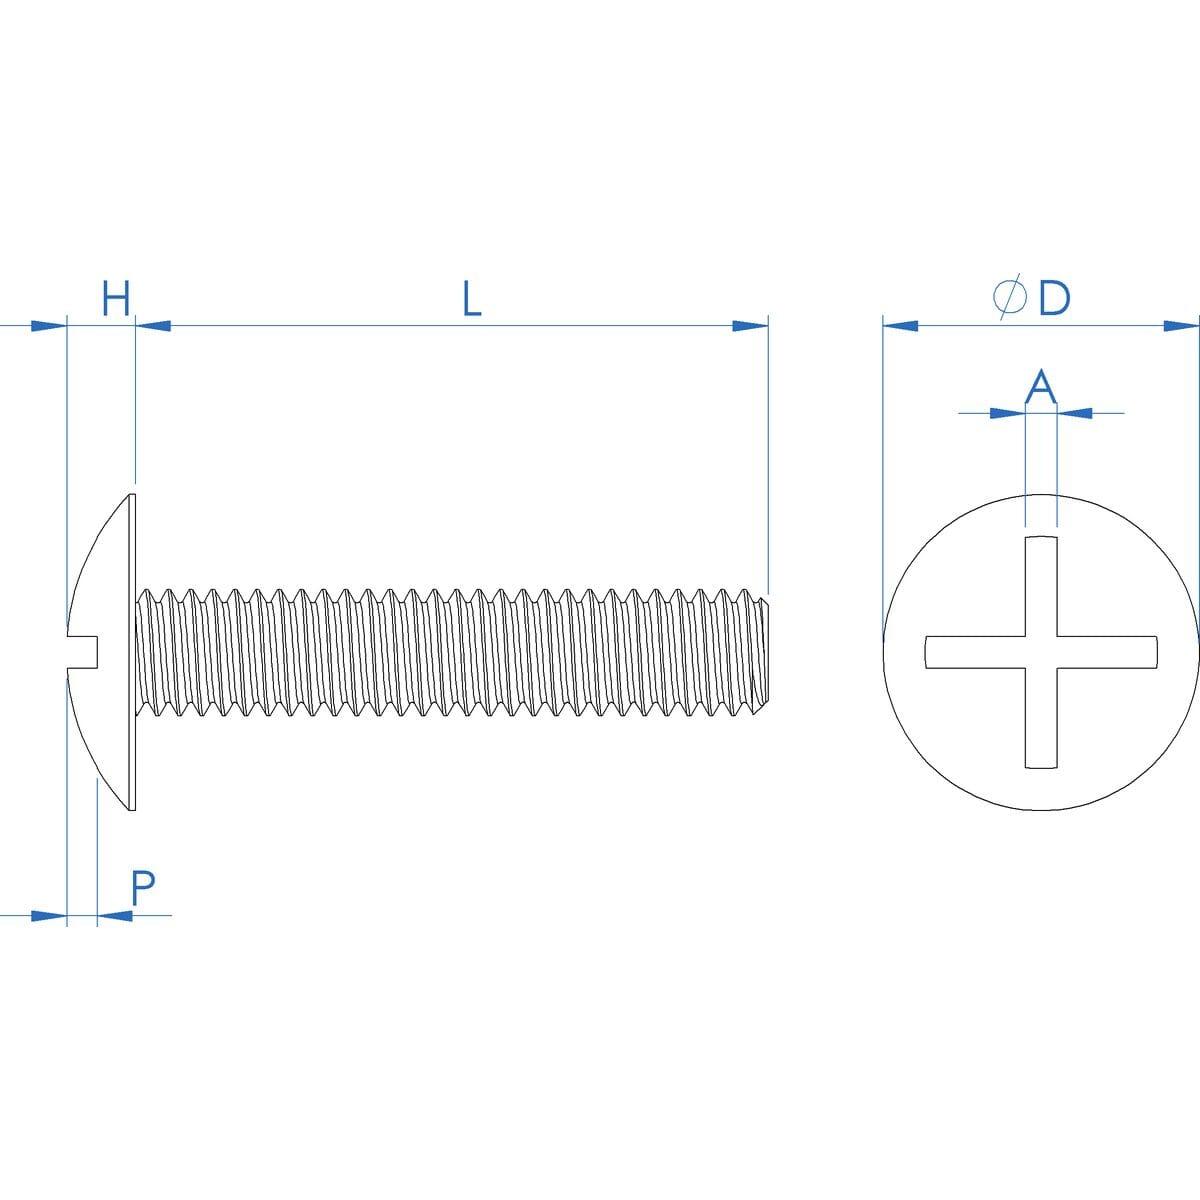 M6 x 20mm Cross-Slotted Mushroom Head Screws (NF E 25-129) - PEEK Drawing